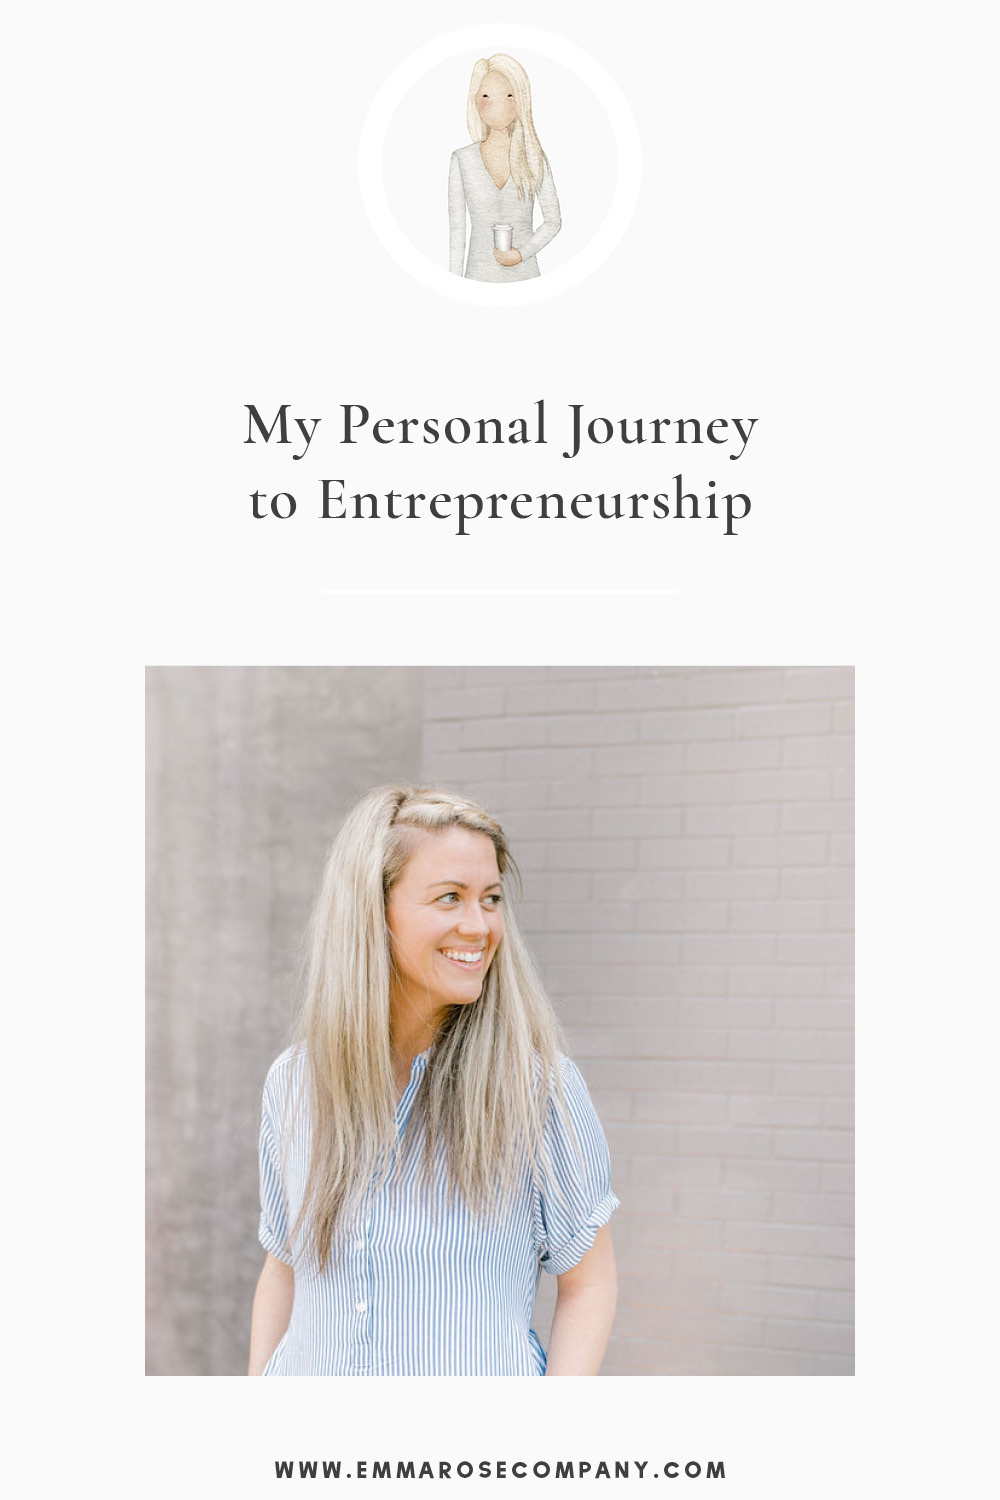 We're kicking off the solo portion of this show with Emma Rose to dive into her personal development and entrepreneurial journey. Emma Rose is a self-made, self-taught, photographer, educator, web designer and much more who learned everything she knows the absolute hardest ways. She shares it all with fellow entrepreneurs because she'd rather see them succeed alongside her than burnout behind. Welcome to the new podcast, At Home With Emma Rose!